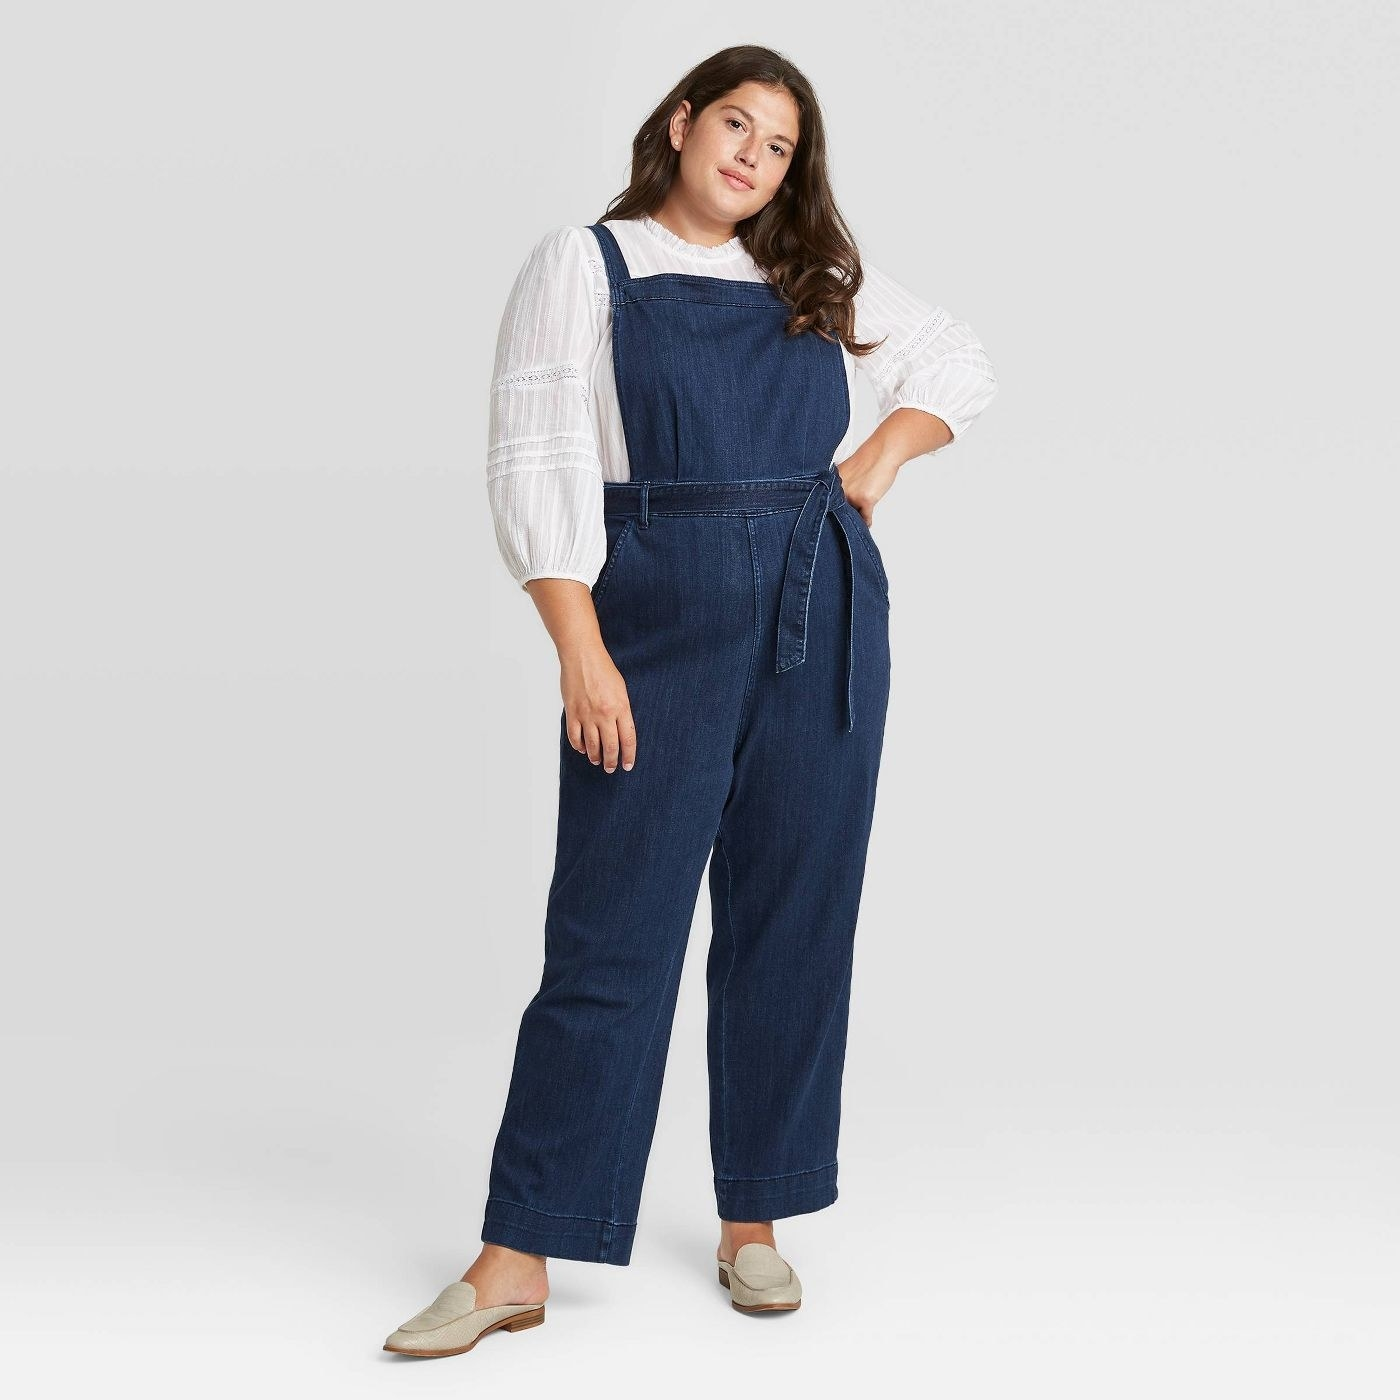 Model wearing blue overalls